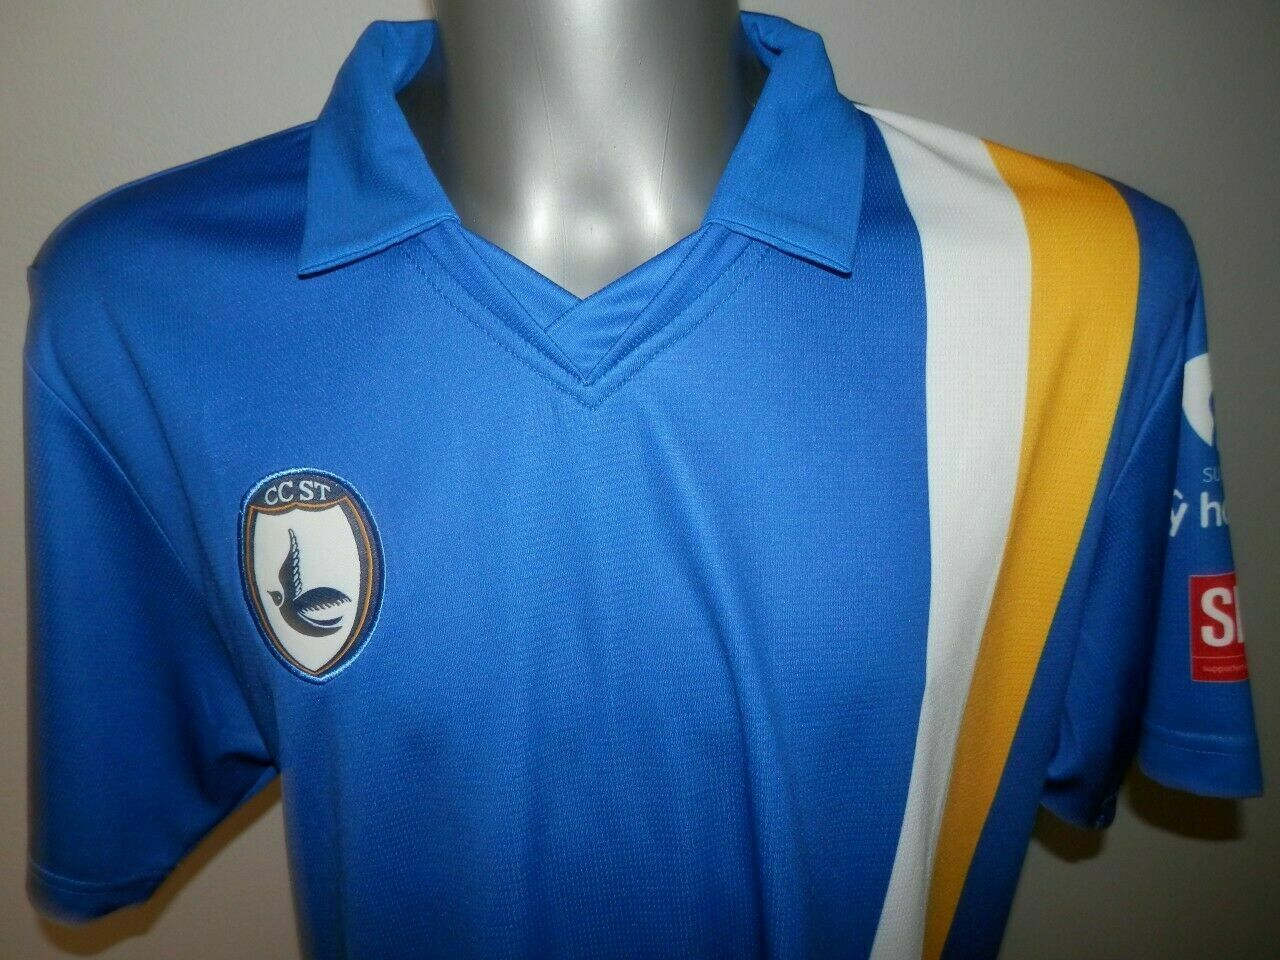 CCST FC Cardiff City blueebirds Home Football shirt Jersey Soccer Kukri size - L